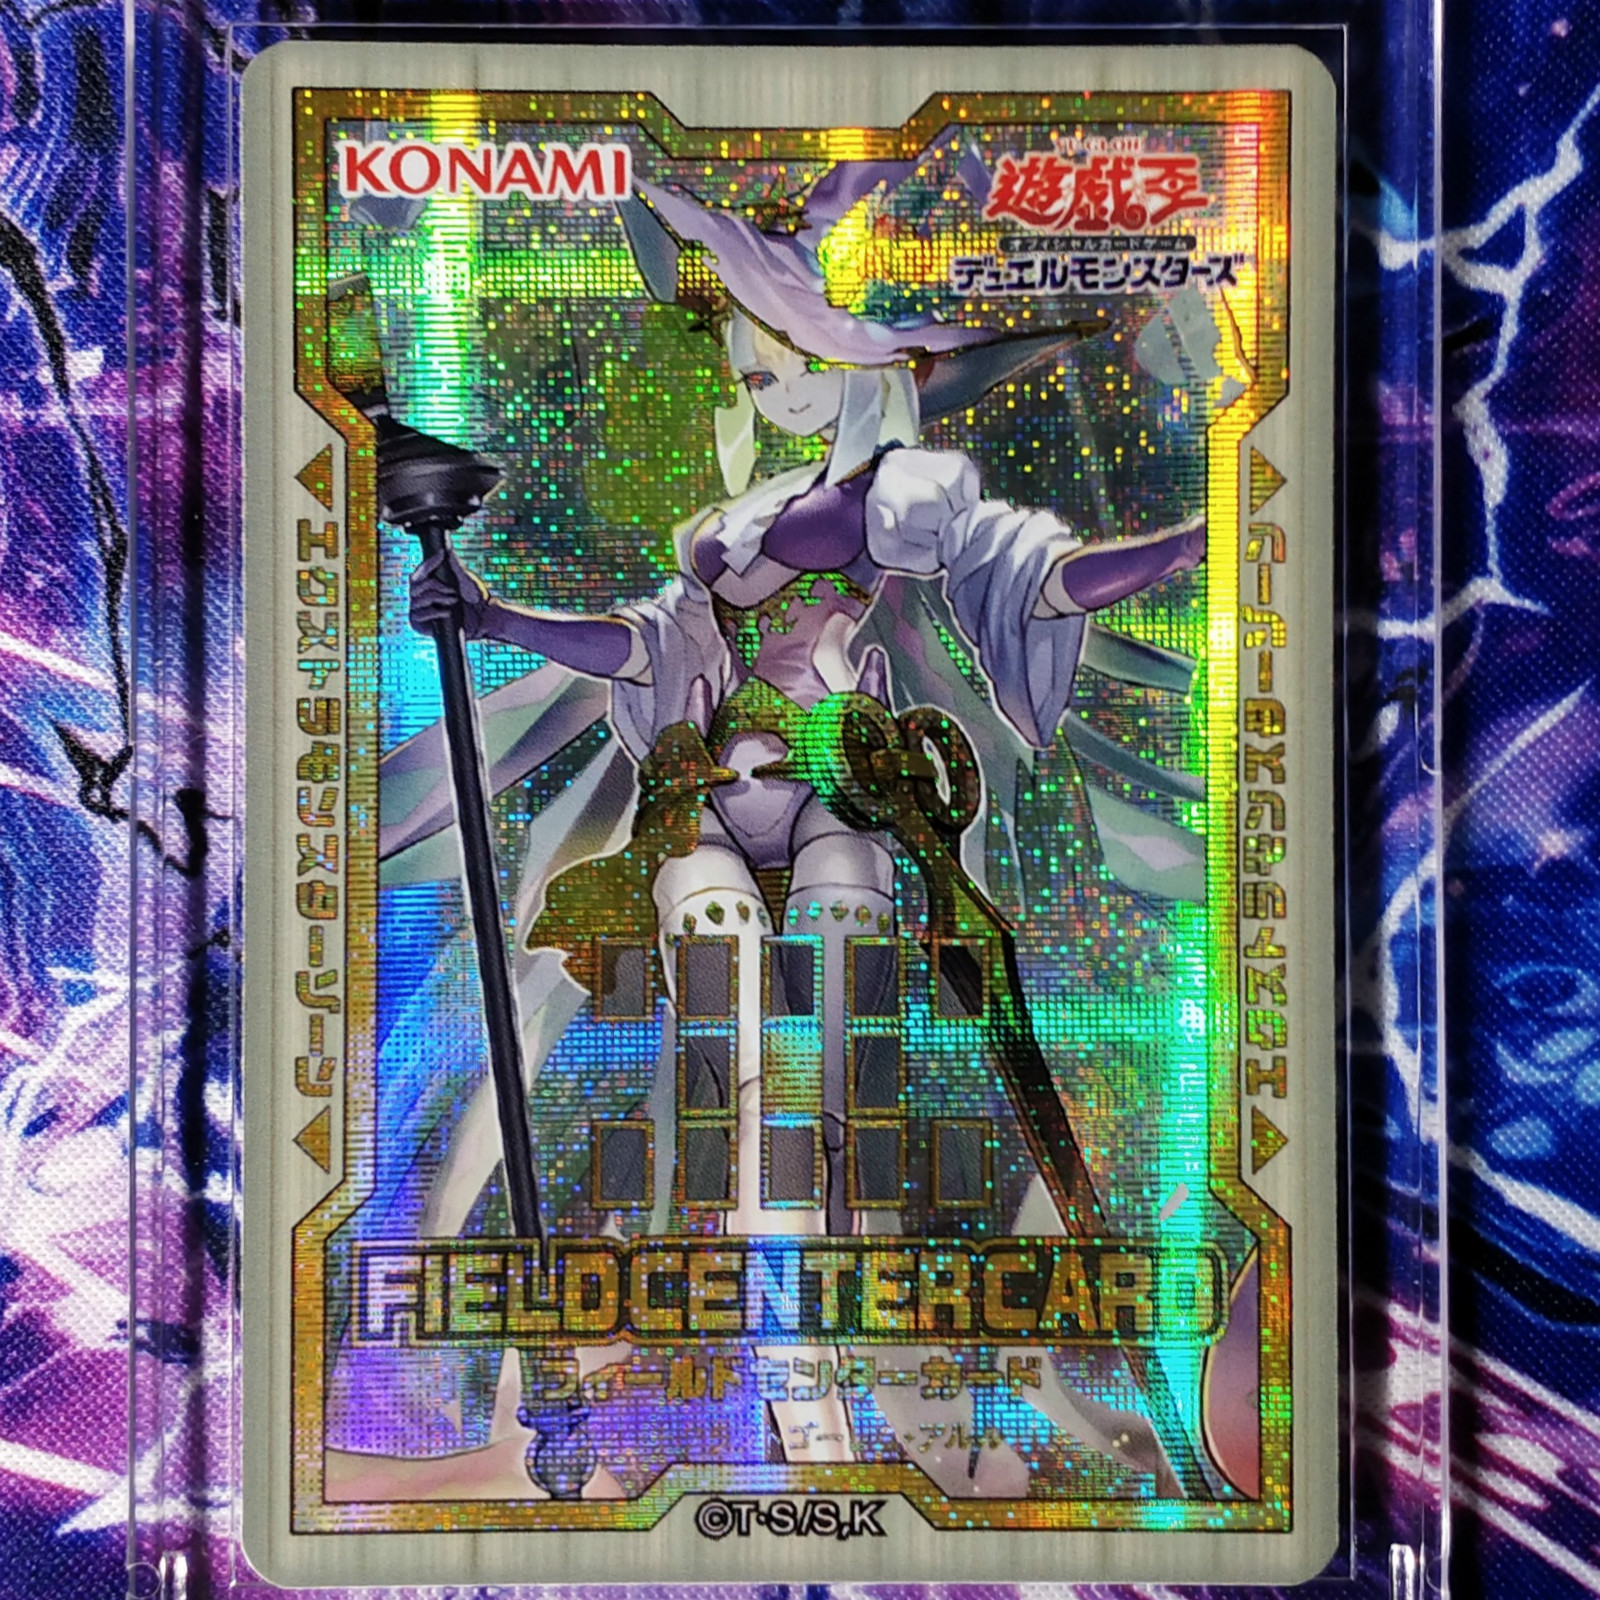 Yu Gi Oh Witchcrafter DIY Colorful Toys Hobbies Hobby Collectibles Game Collection Anime Cards